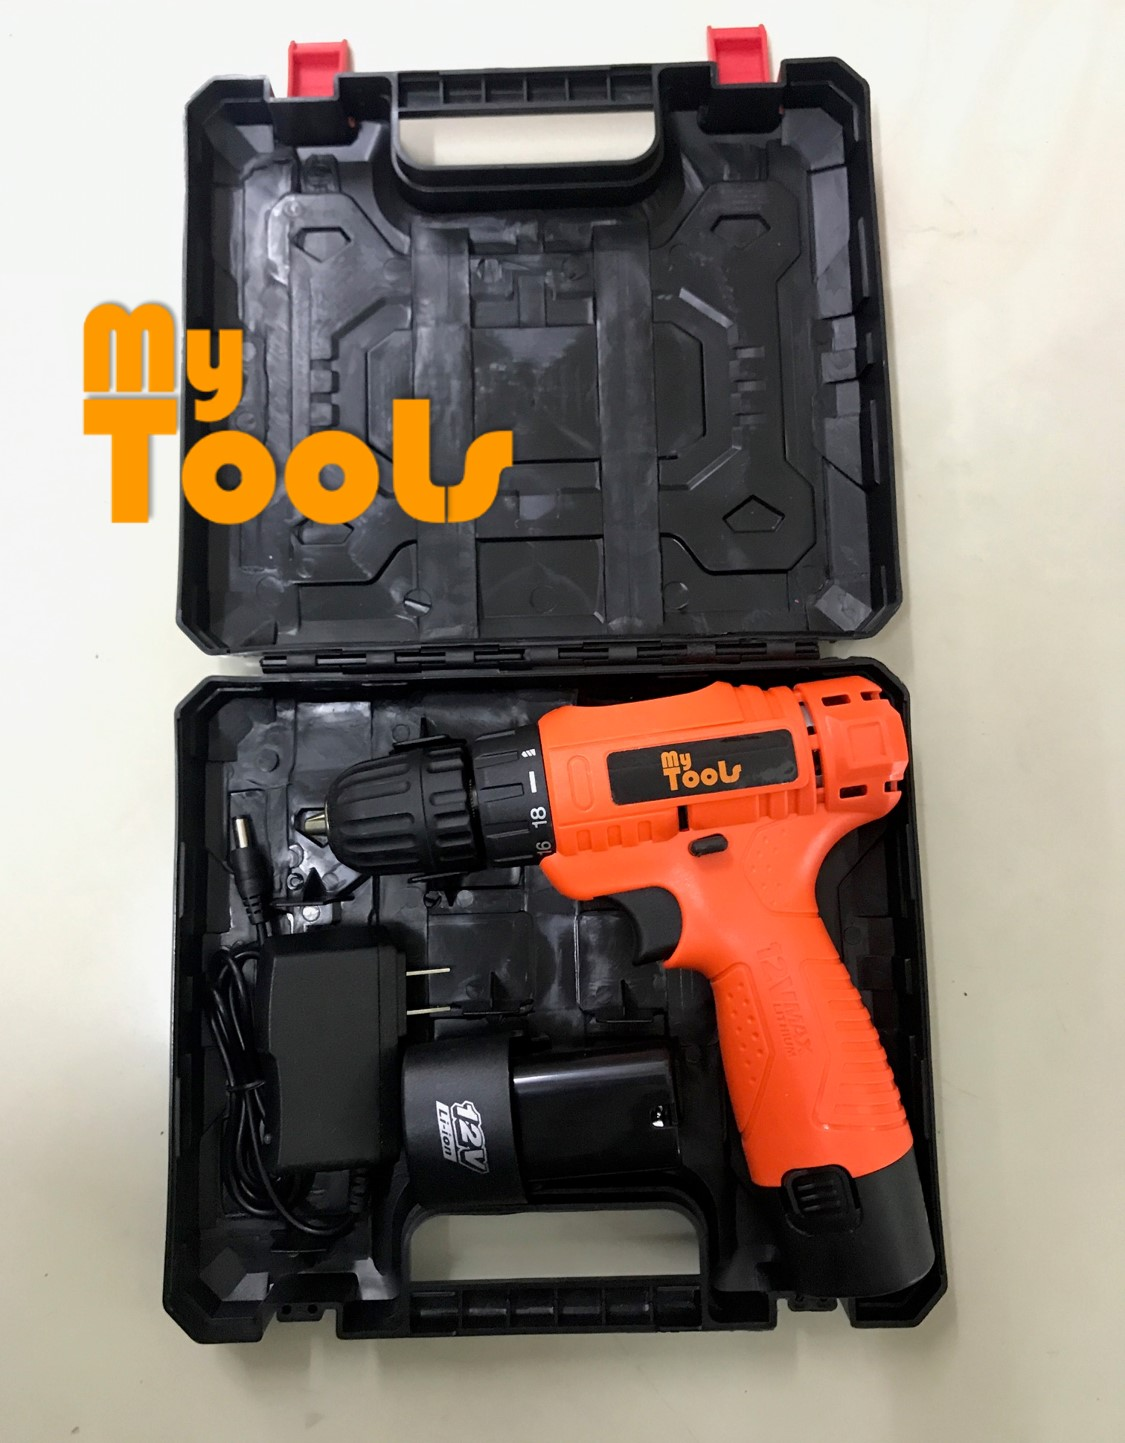 MyTools 12V Li-ion Cordless Rechargeable Electric Power Tool Drill c/w Double Battery